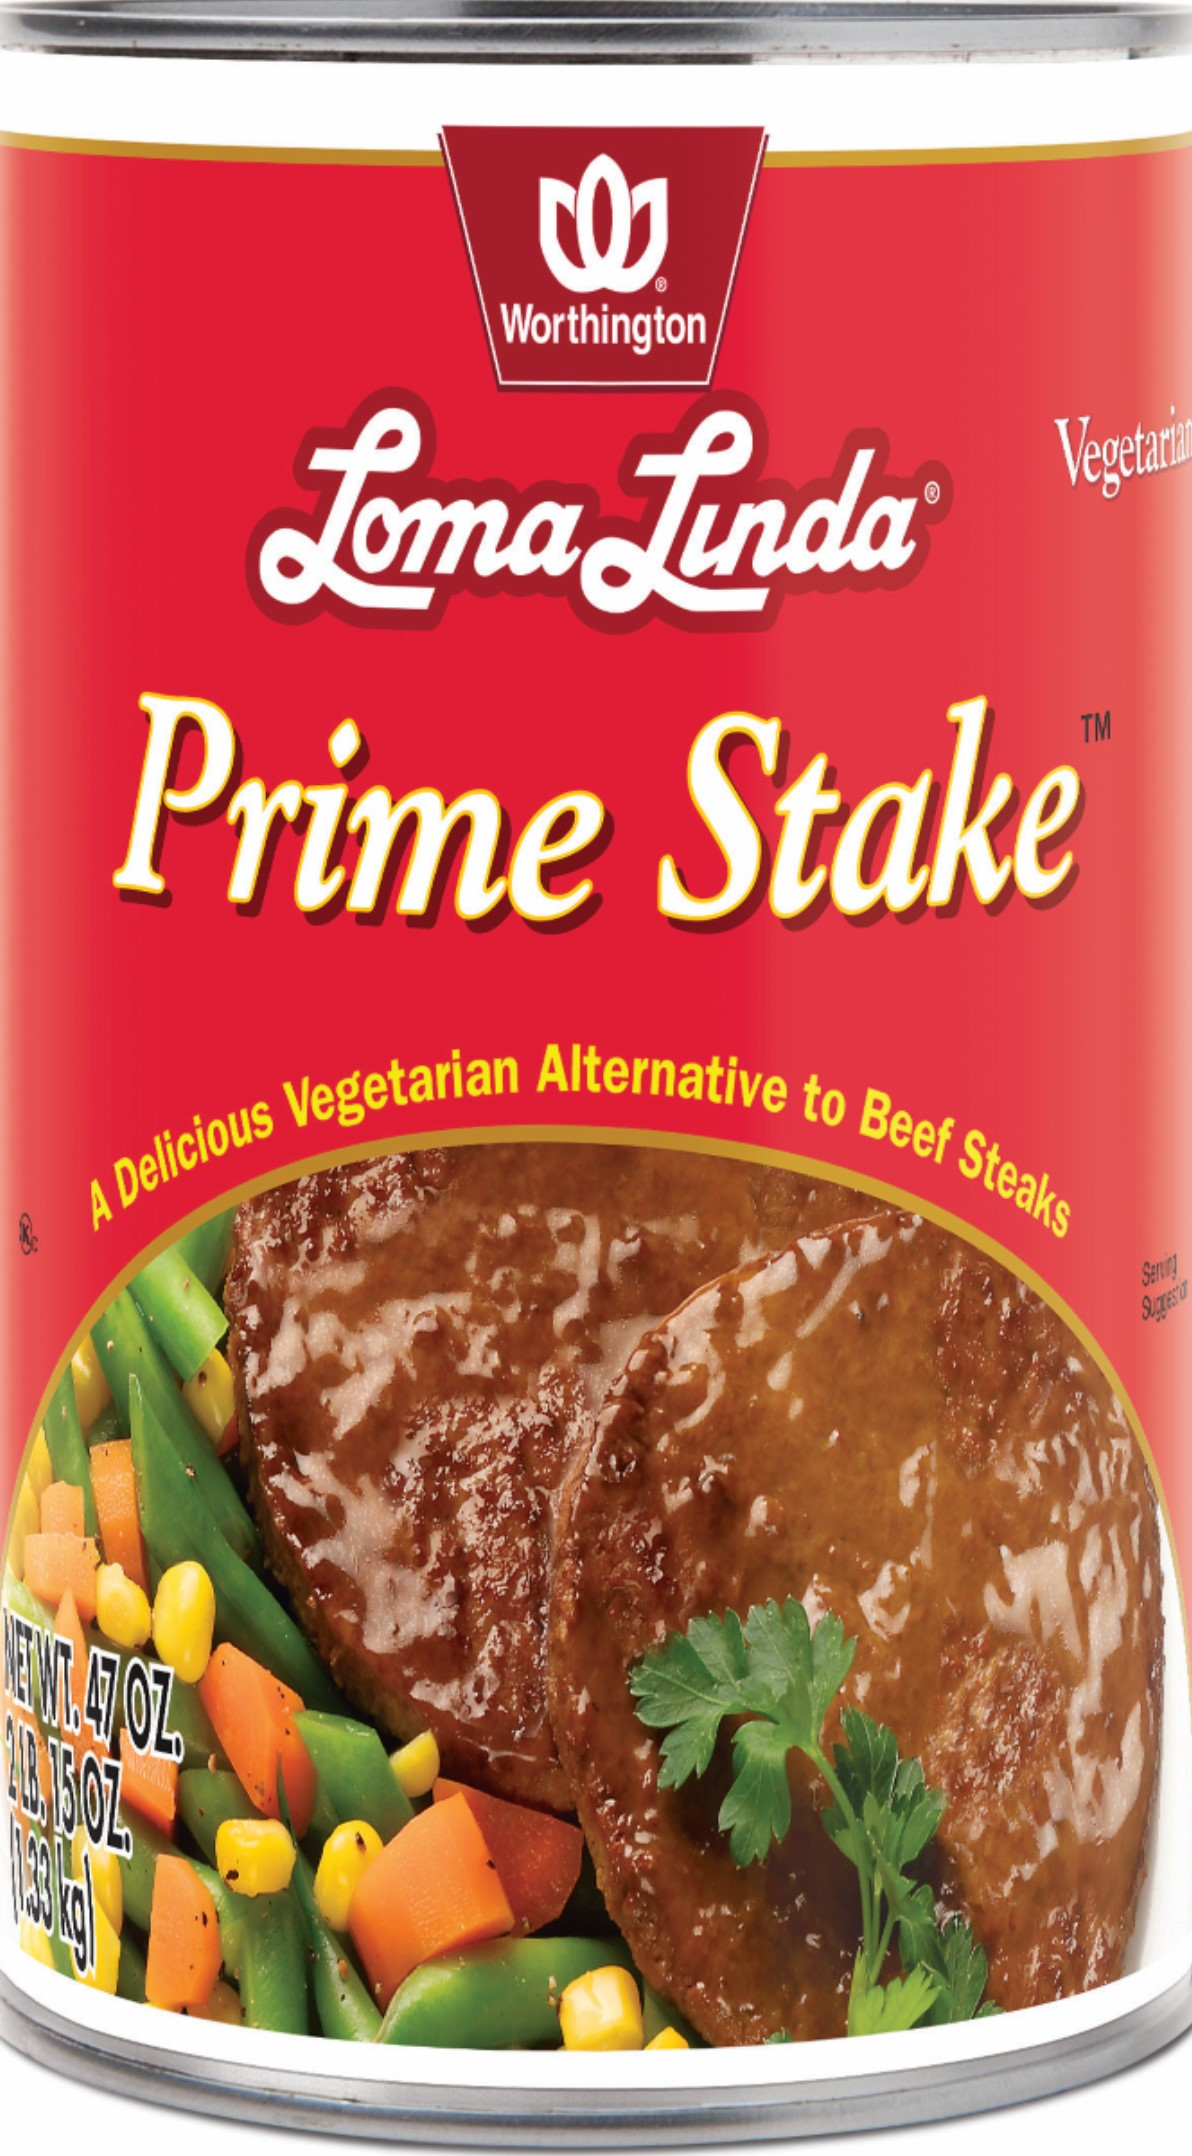 PRIME STAKES FAMILY SIZE CASE,WORTHINGTON,100069